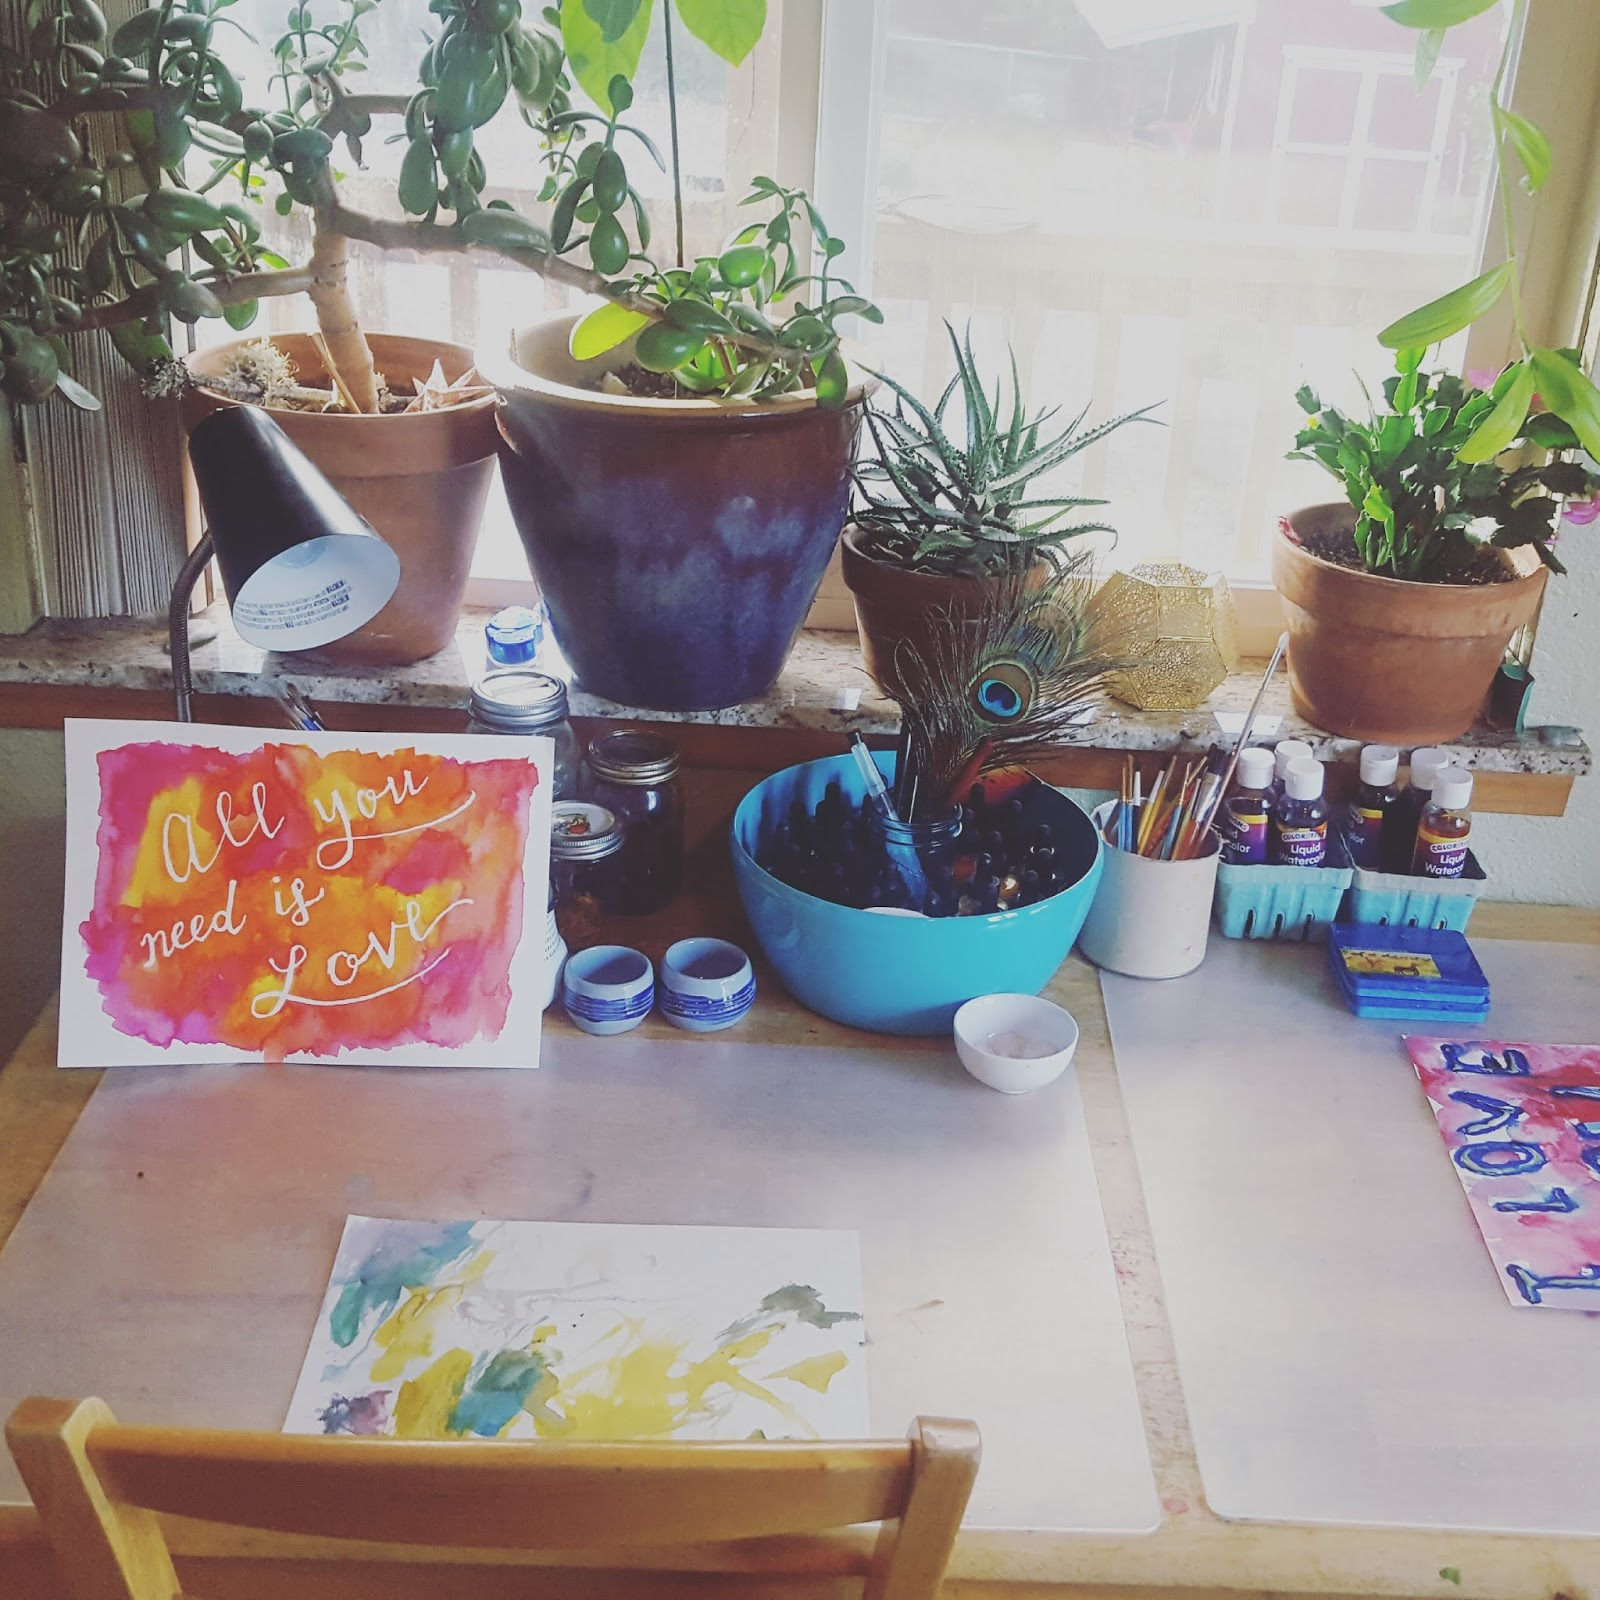 It Doesnt Always Look Like This But I Am Trying To Keep Space In Our Dining Room Kitchen Open For Painting Drawing And Occasional Play Doh